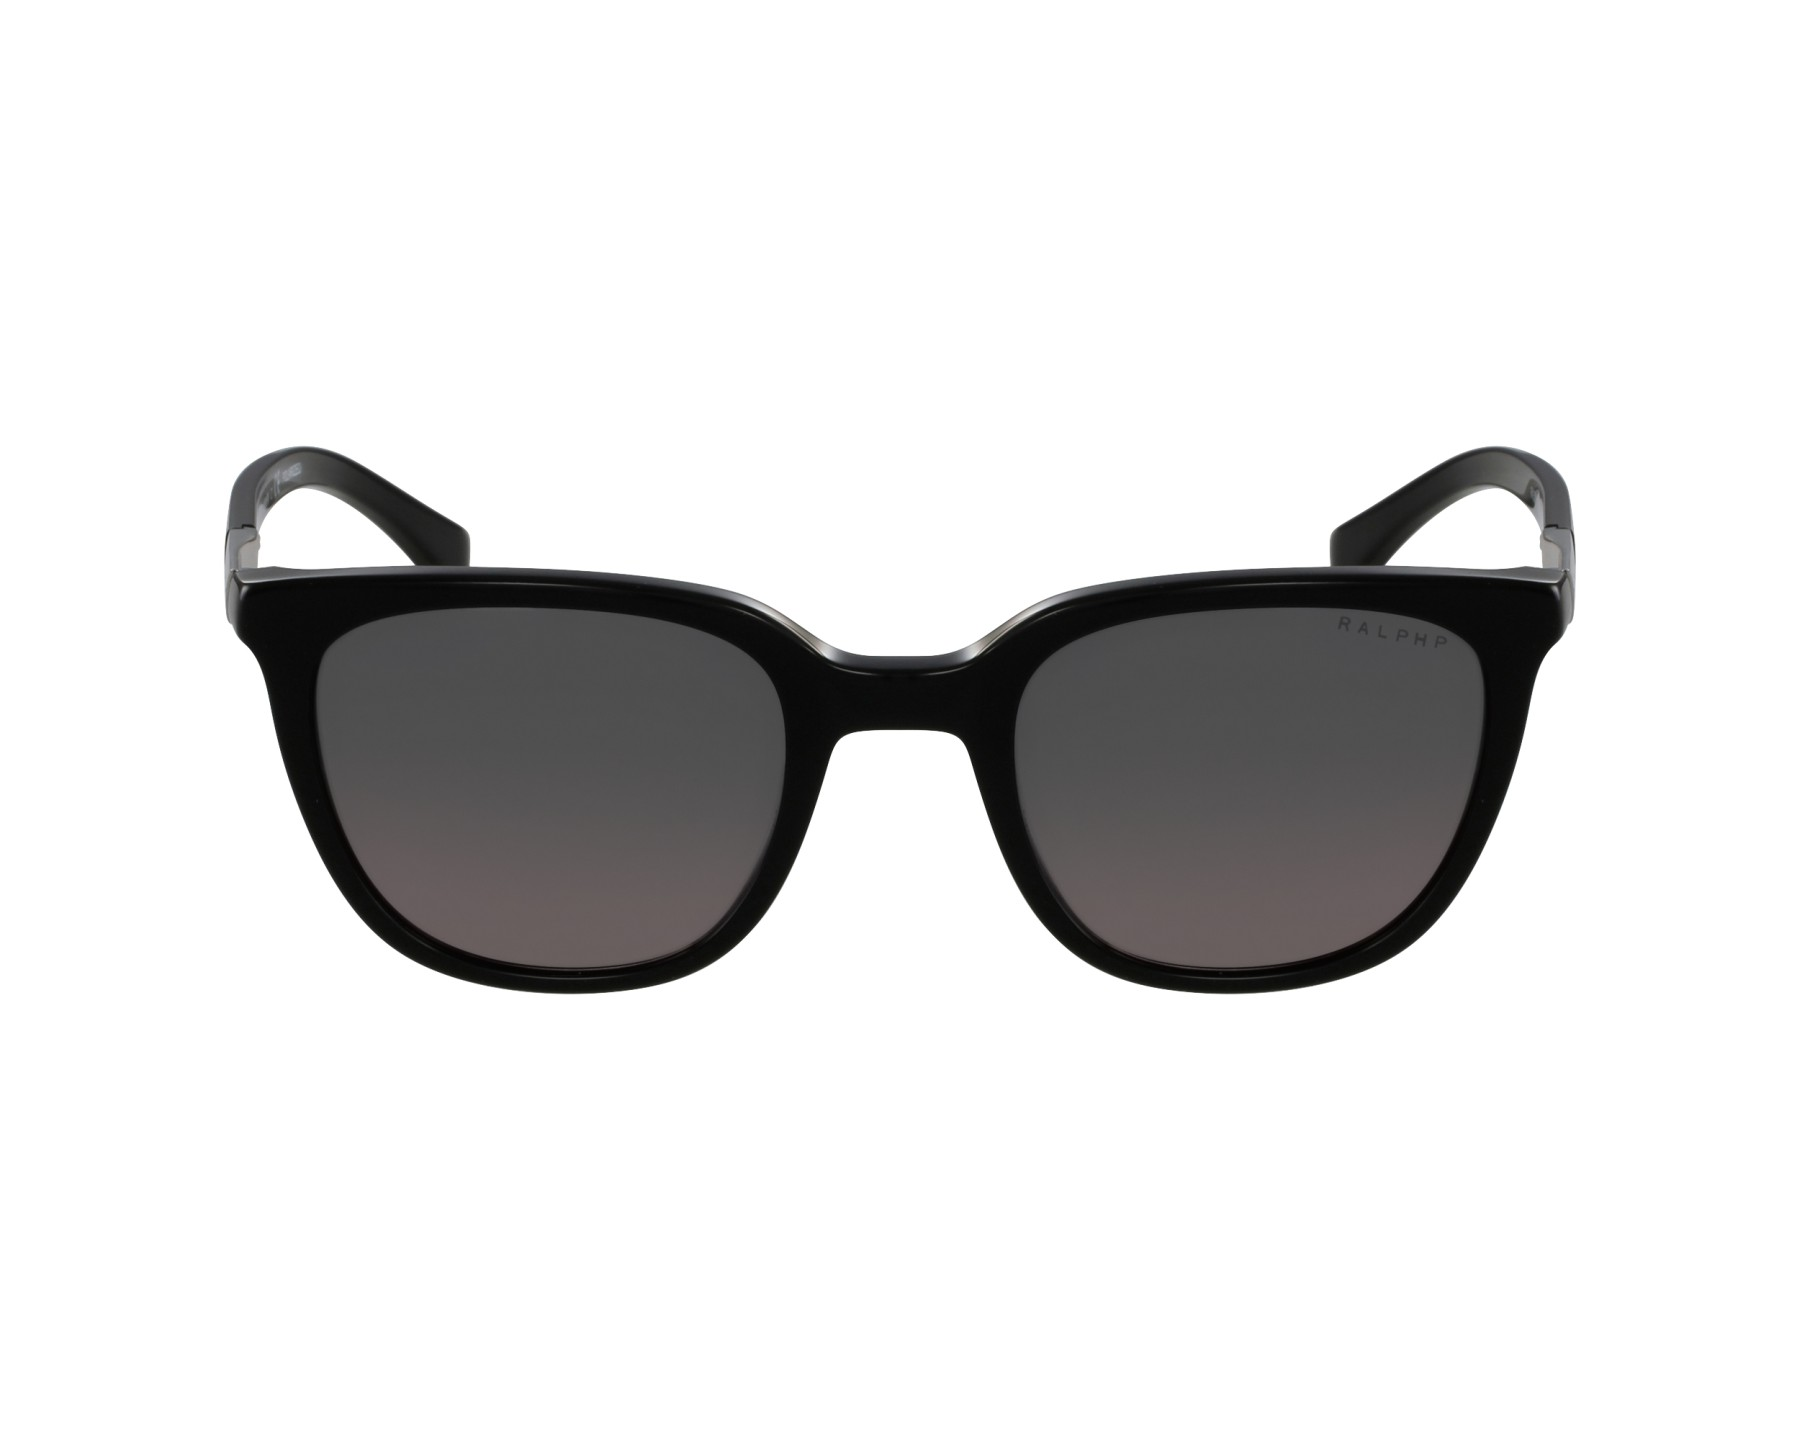 9f1a199a8c Polarized. Sunglasses Ralph by Ralph Lauren RA-5206 137762 51-20 Black  Silver profile view